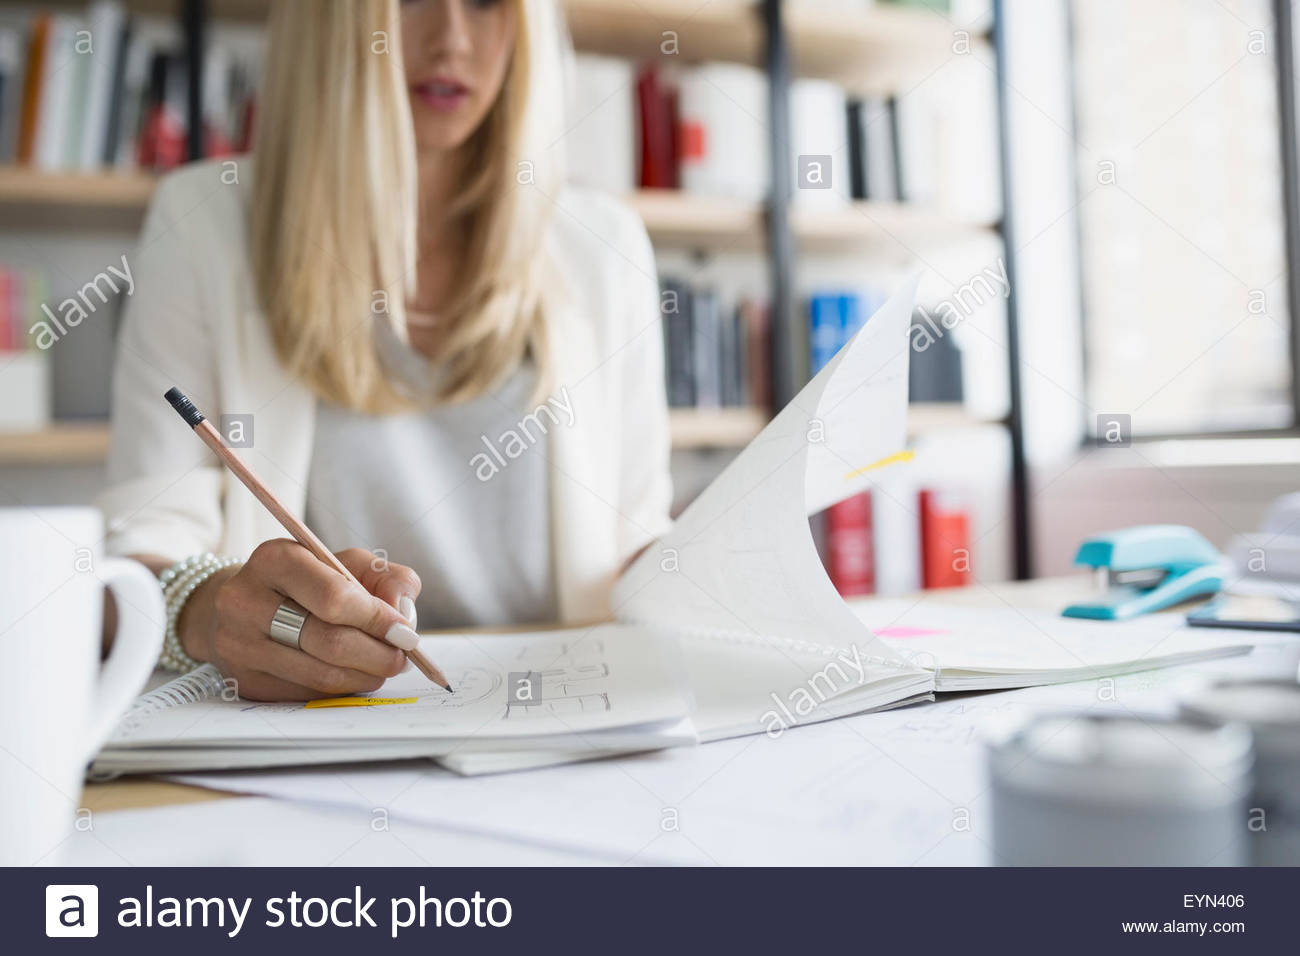 Architect drafting blueprints in office - Stock Image